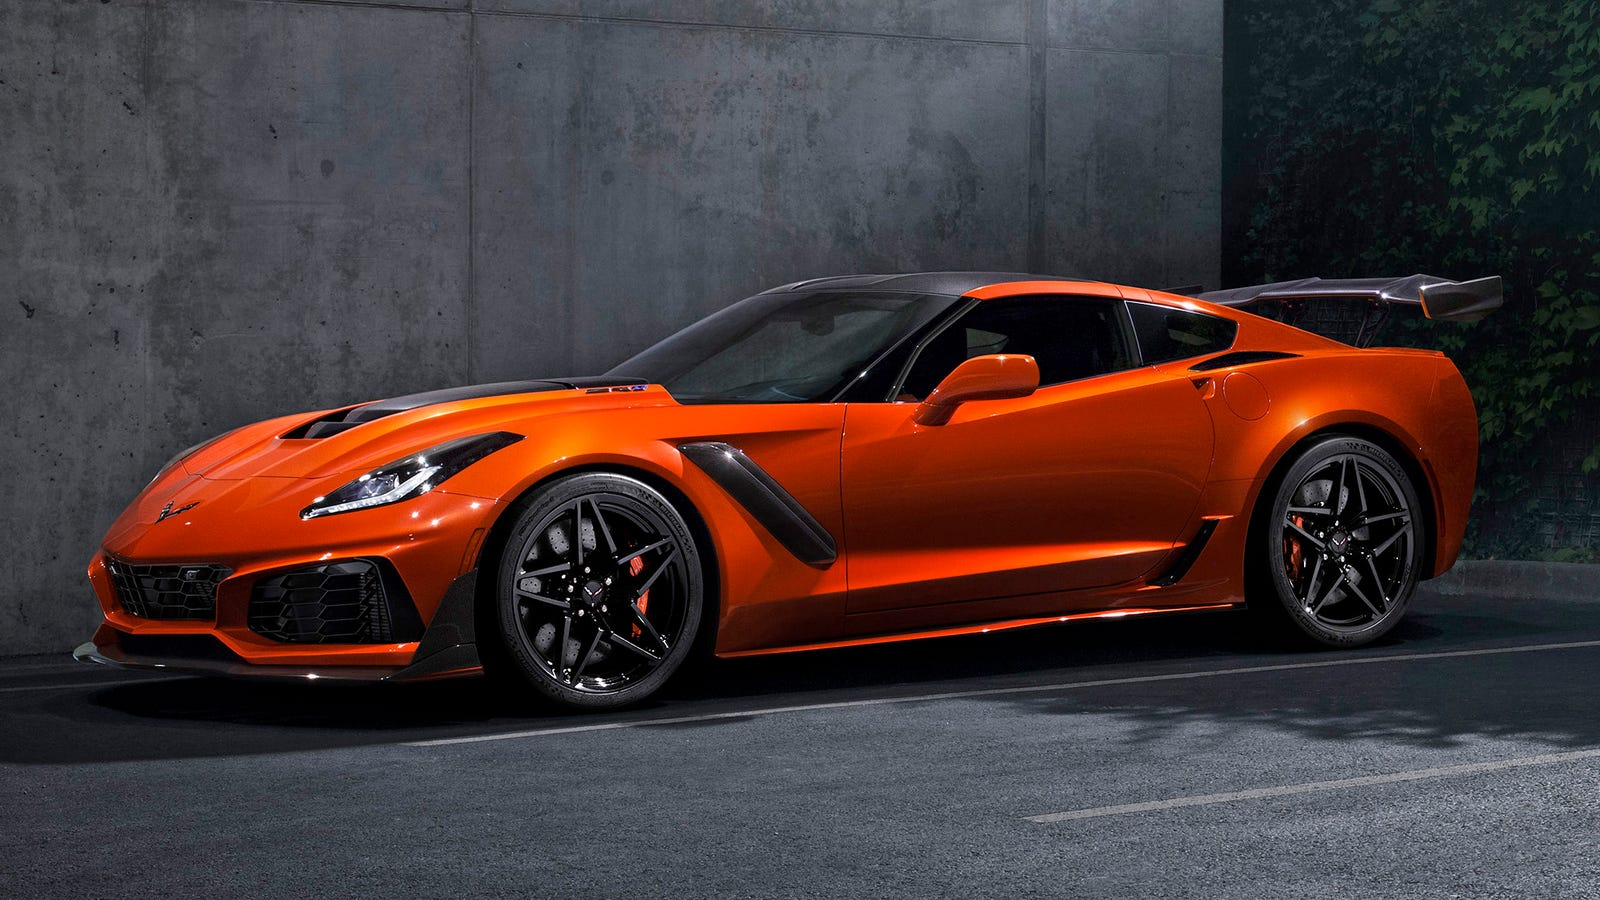 the 2019 chevrolet corvette zr1 meet the fastest and most powerful 39 vette ever. Black Bedroom Furniture Sets. Home Design Ideas